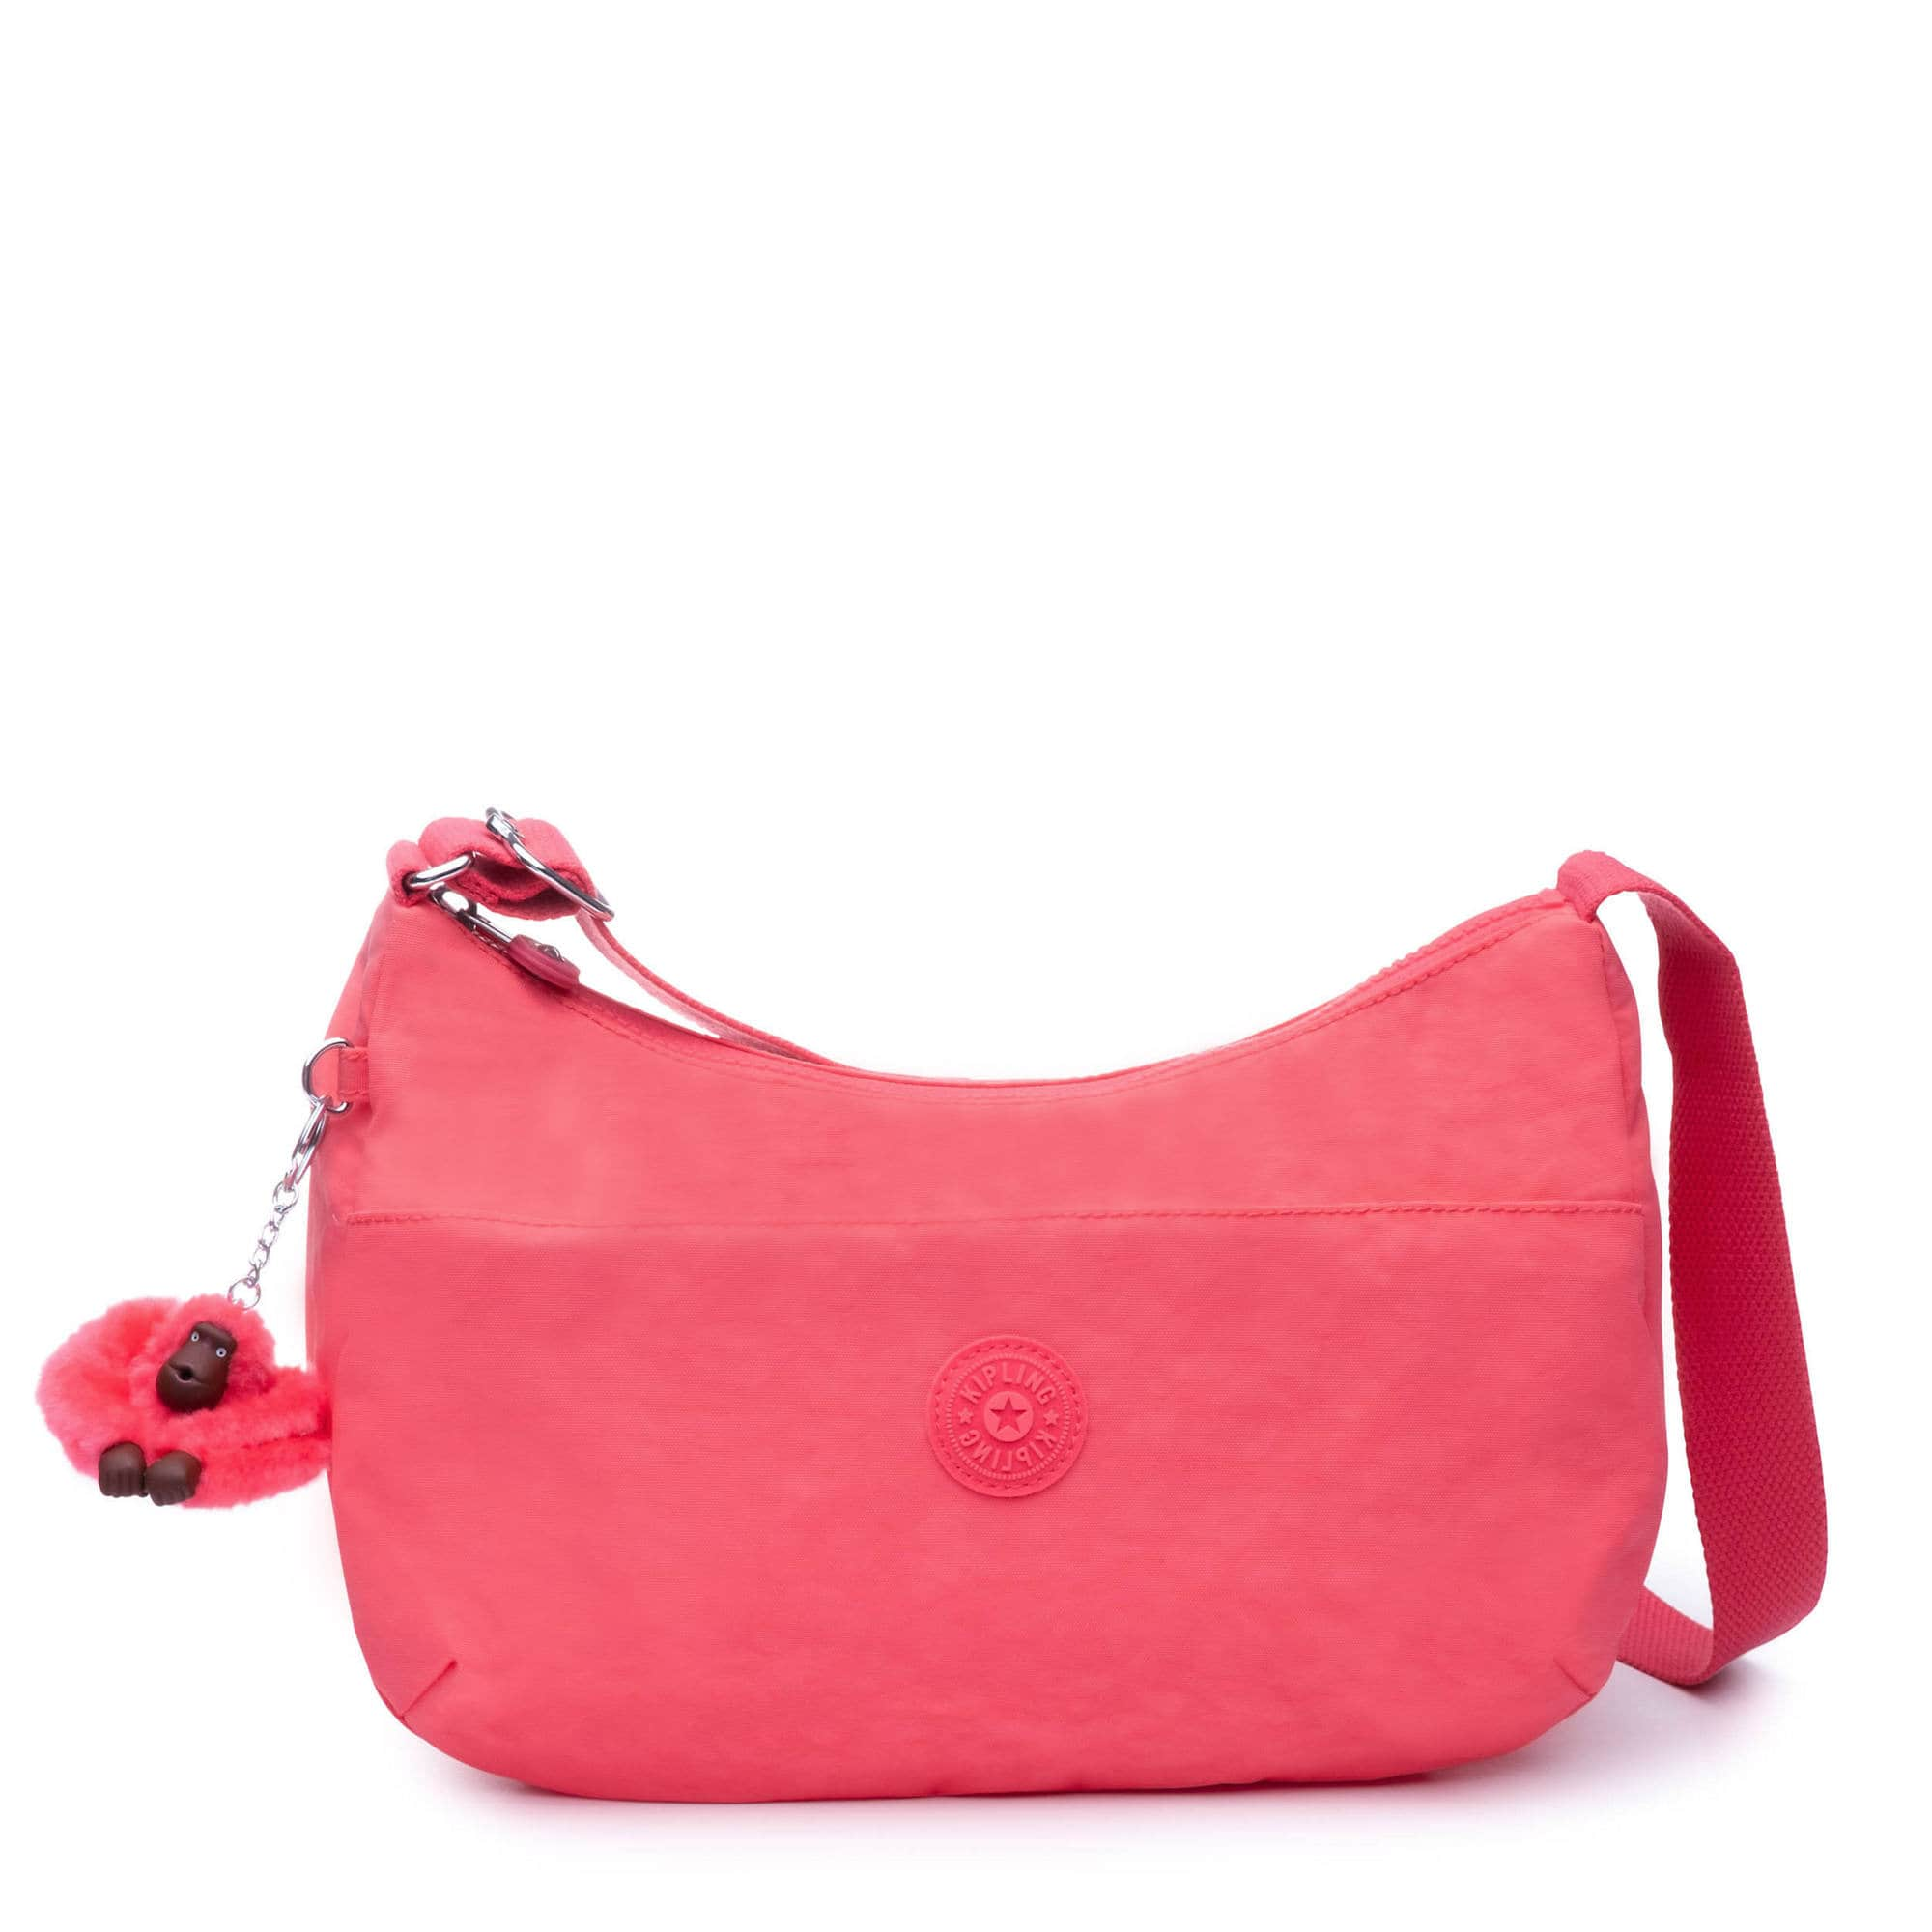 Kipling Summer Flash Sale: Adley Bag (various colors) $25.49, Emma Crossbody Bag (various colors) $25.40 & More + Free Shipping